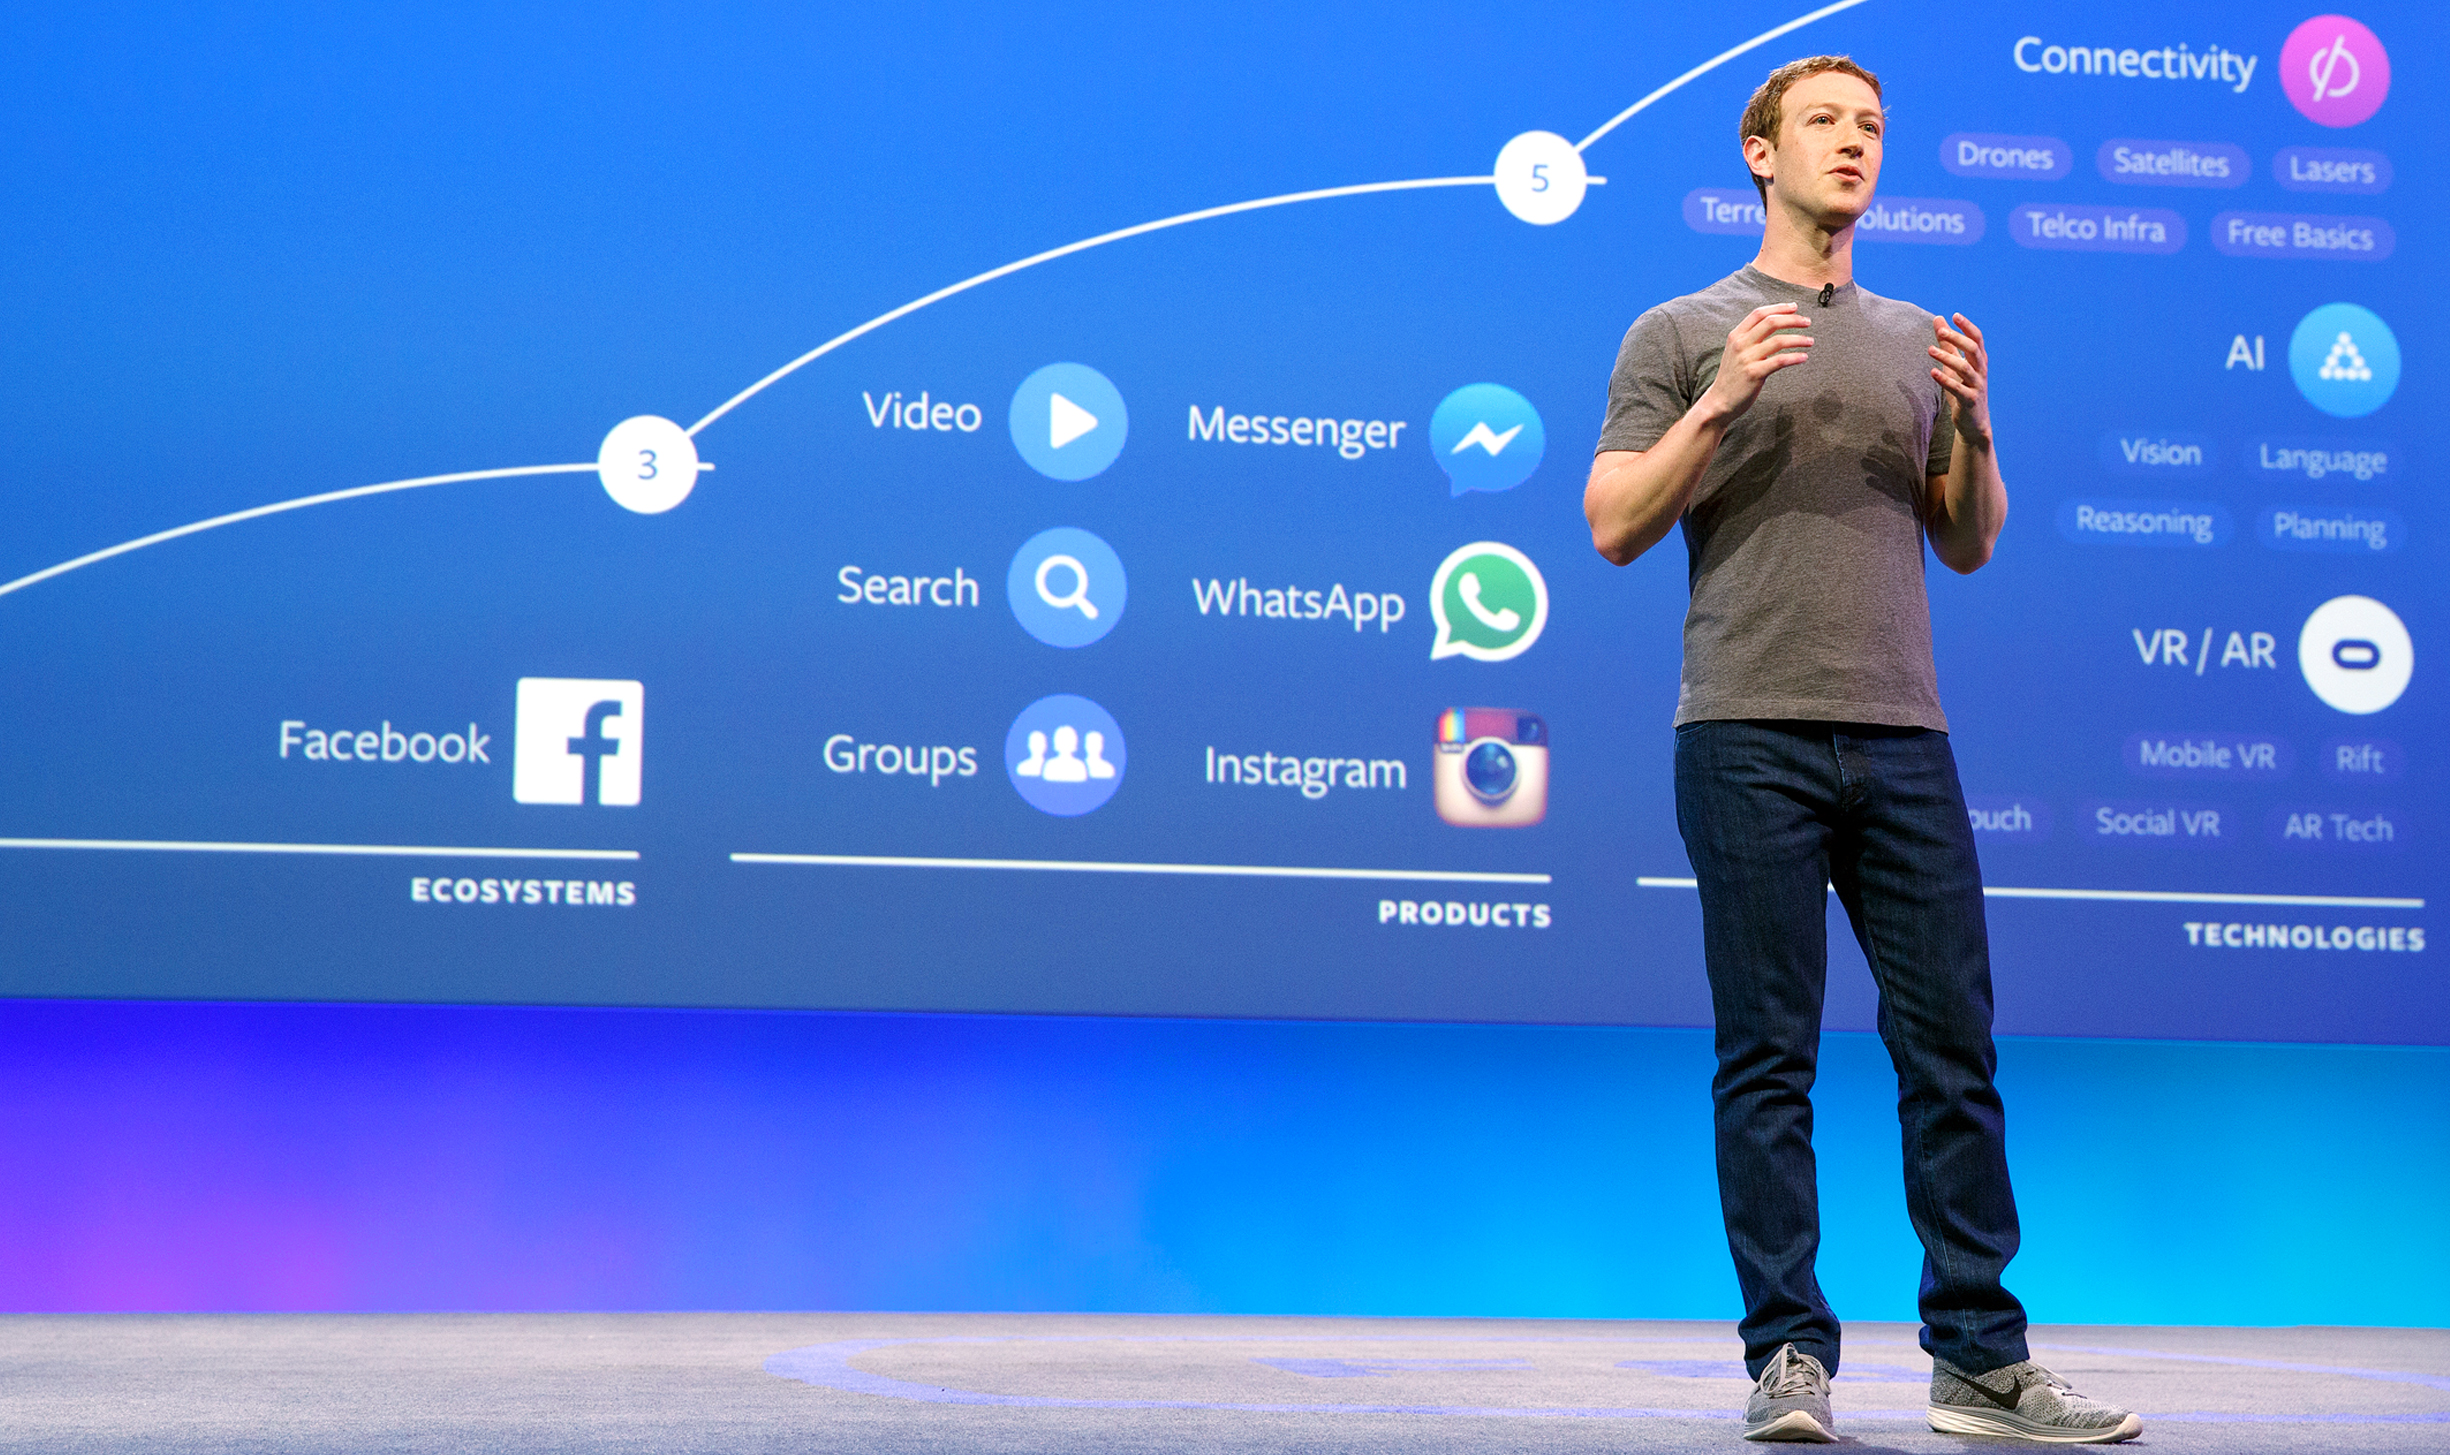 At Facebook's F8 developers conference in April, Zuckerberg laid out the company's 10-year road map, which includes continued development of artificial intelligence and virtual reality.